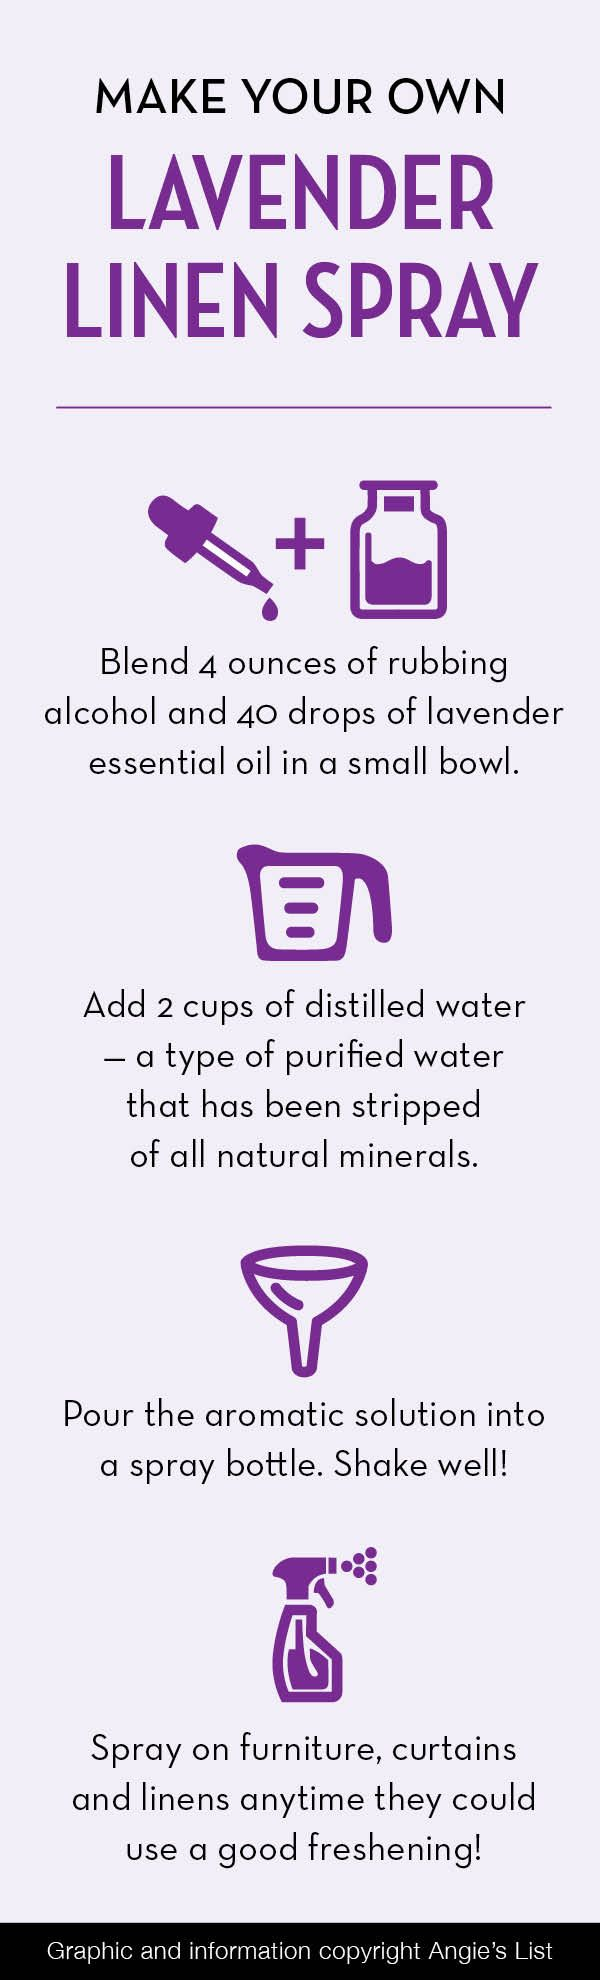 How To Make Your Own Lavender Linen Spray